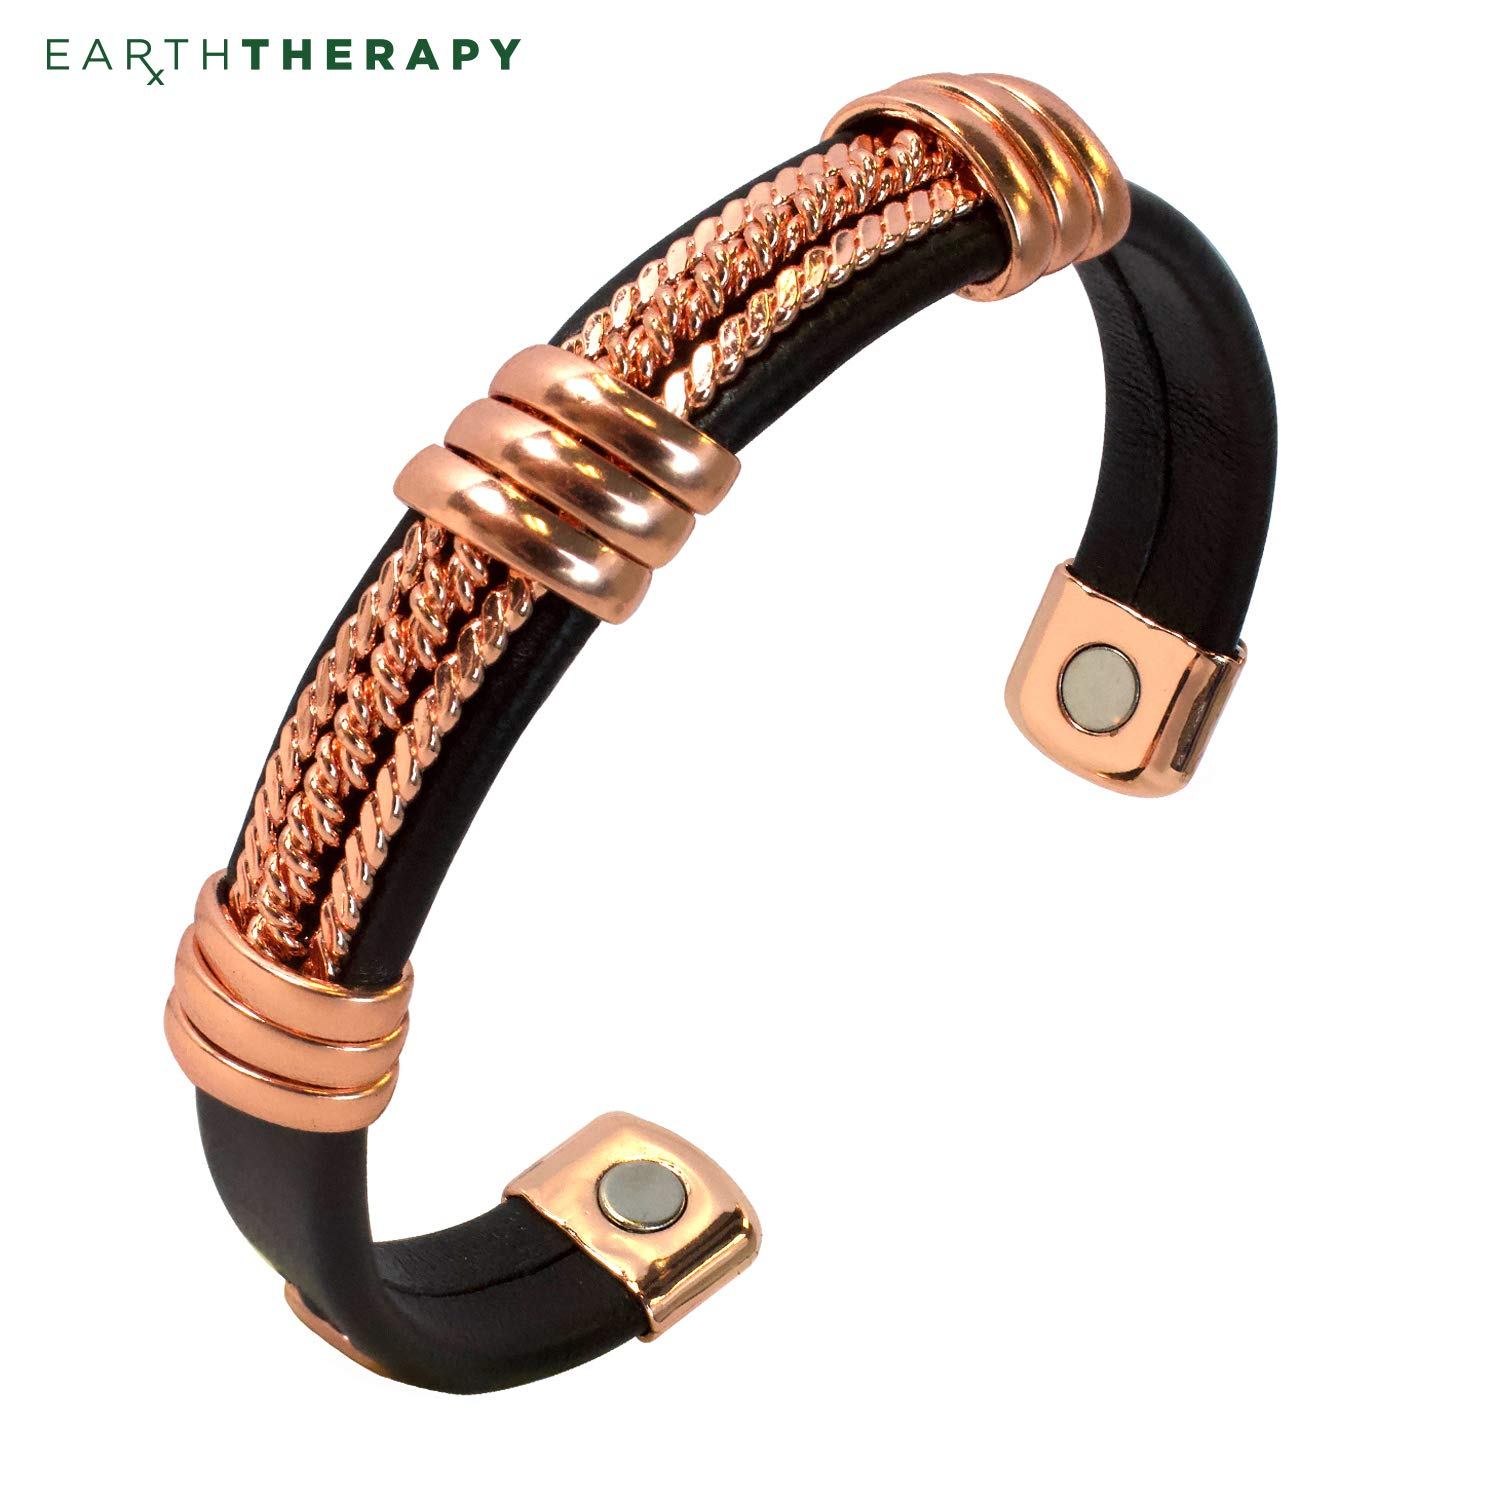 Real Copper and Leatherette Motorcycle Bracelet for Men and Women Cool Magnetic Jewelry Accessories for Harley Davidson Fans …